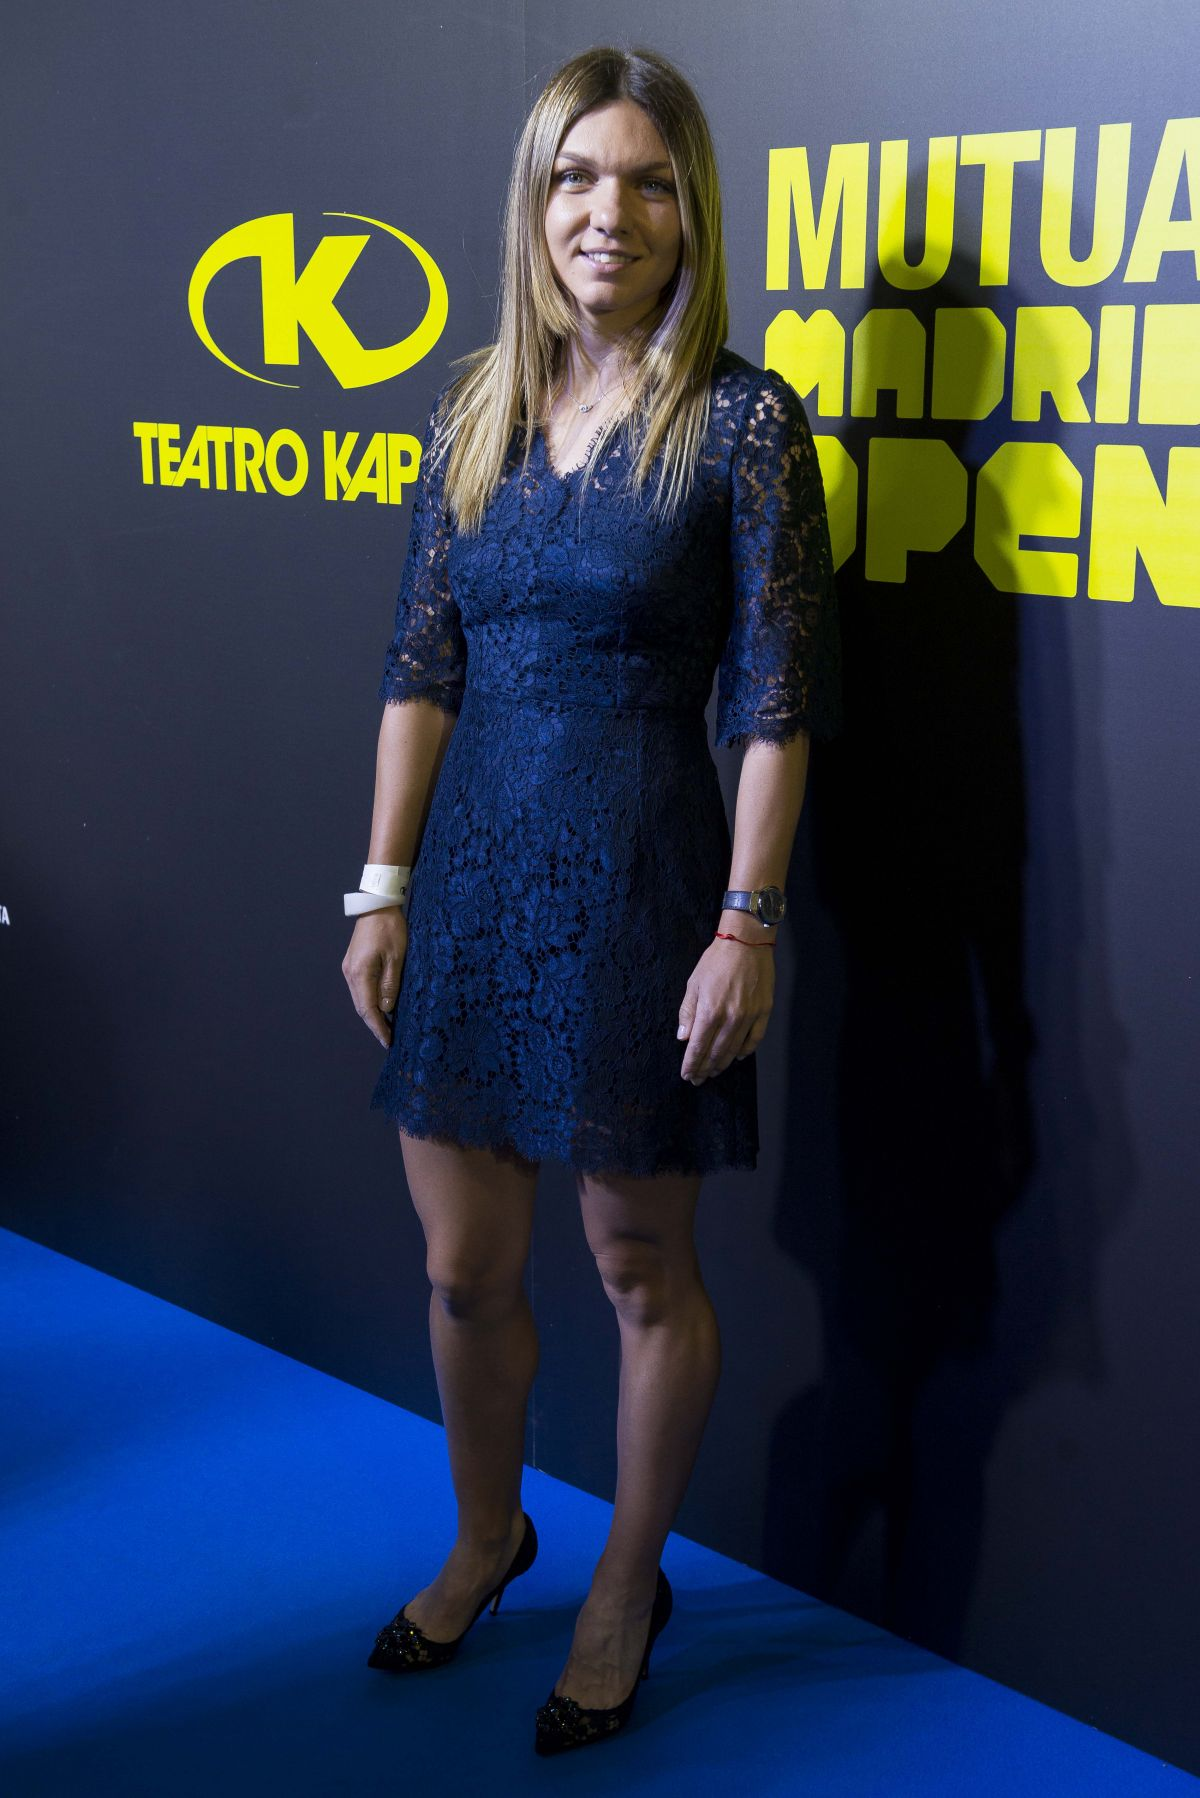 Simona Halep - Page 17 Simona-halep-at-mutua-madrid-open-party-in-madrid-05-05-2017_2